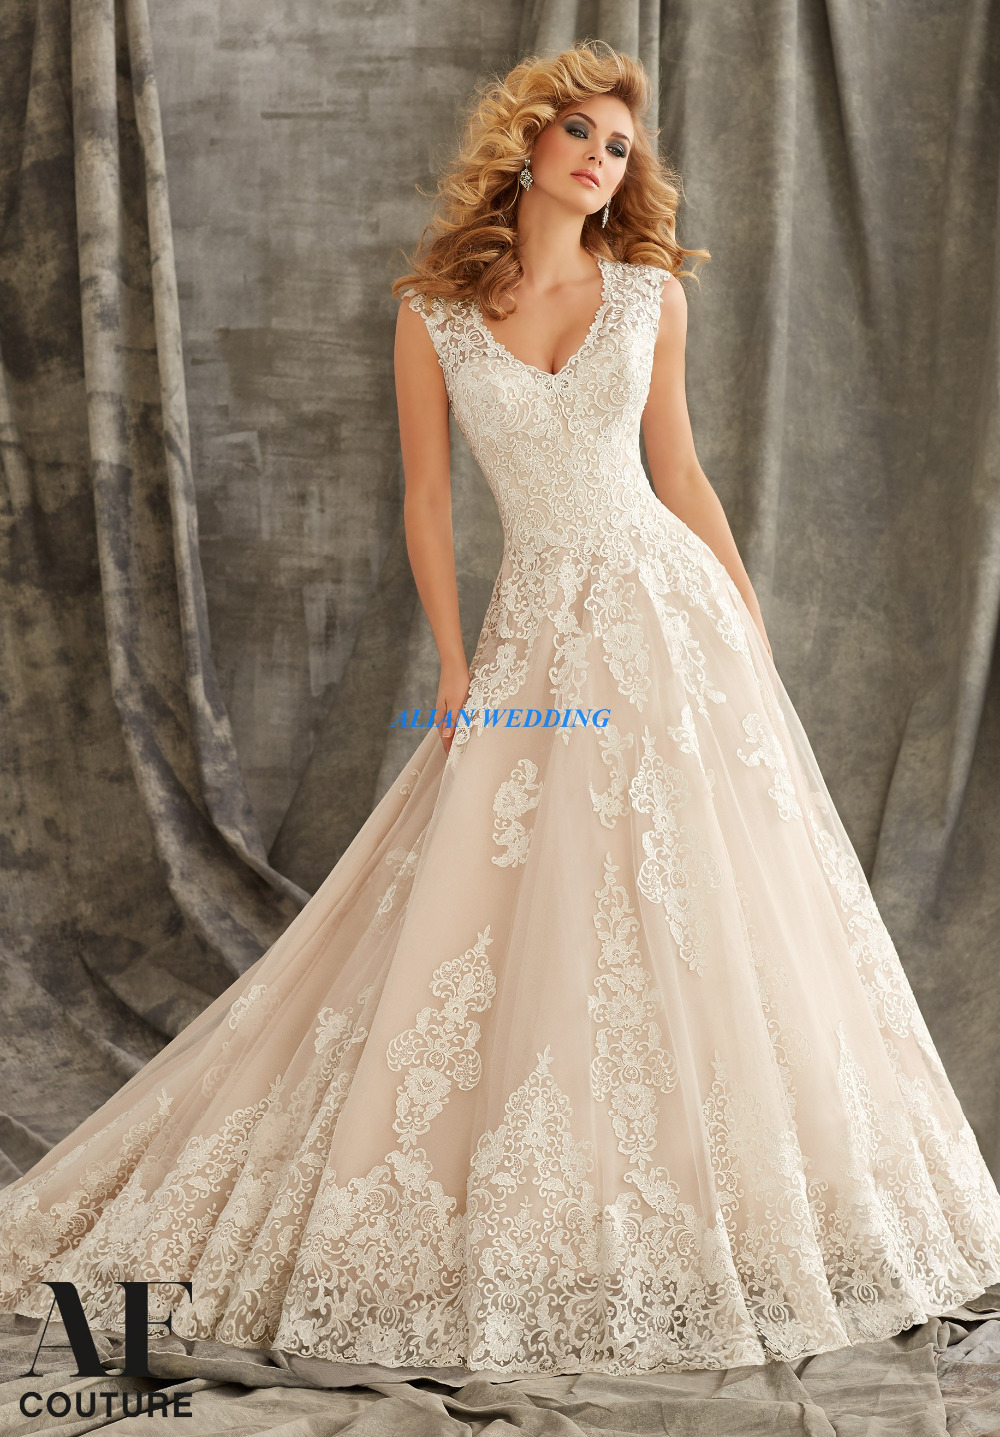 Greek style wedding dresses a line vestidos de novia lace for Greece style wedding dresses